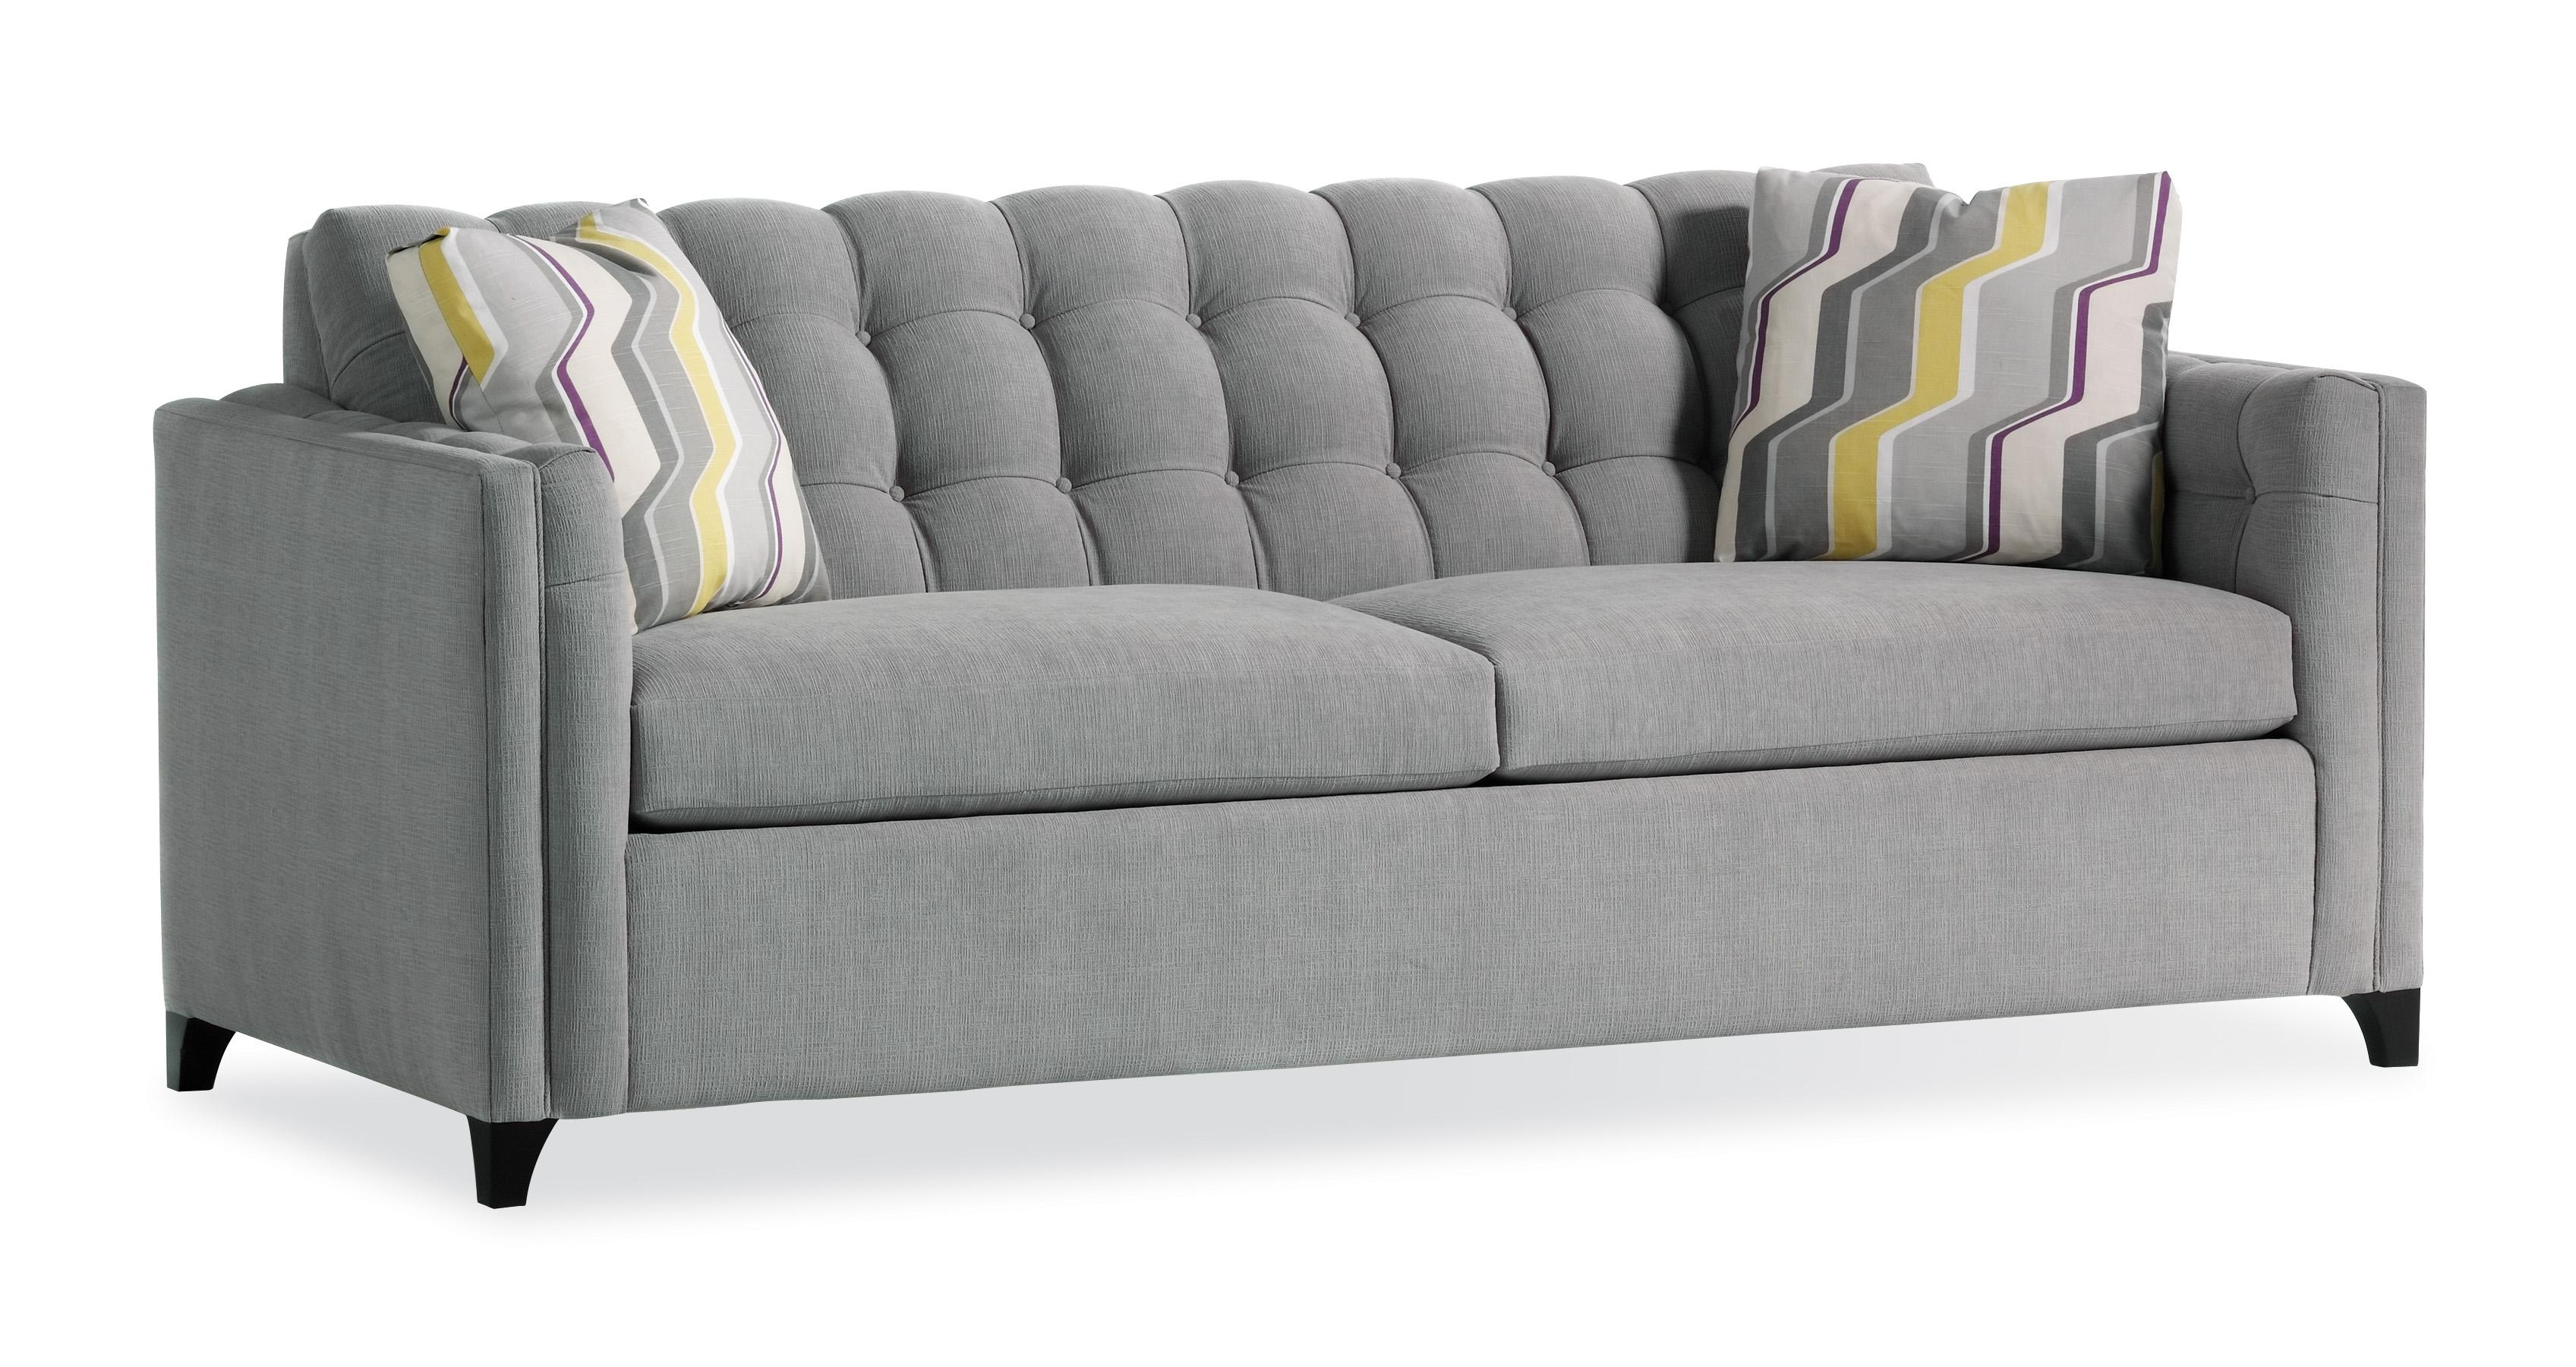 Sofas Center : Tufted Sleeper Sofa Stunning Photo Design Urban With Regard To Tufted Sleeper Sofas (View 4 of 20)